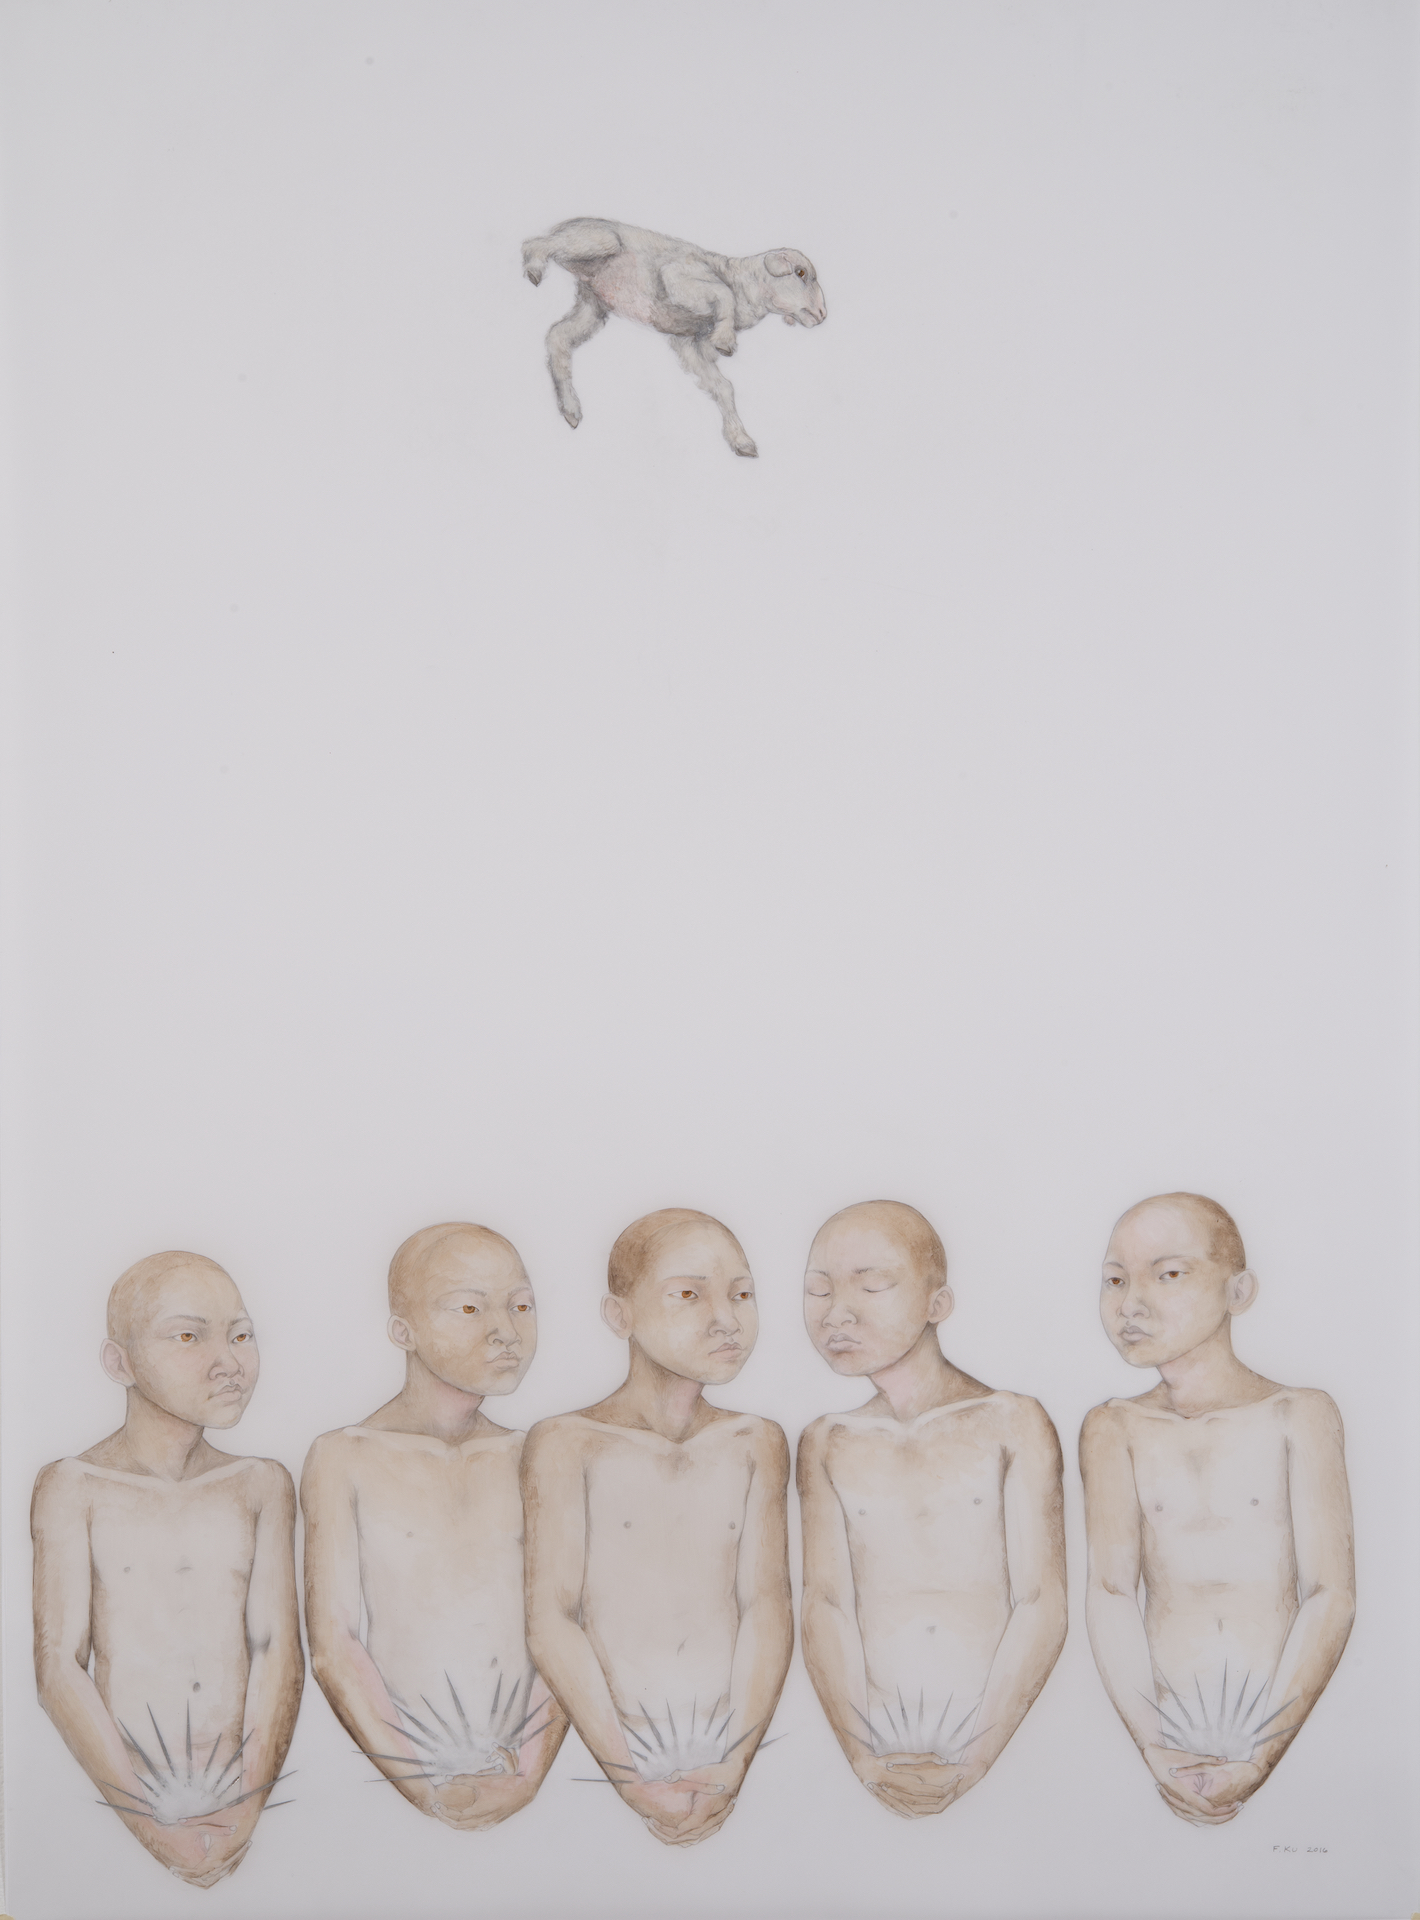 Supplicants , 2016 Graphite, acrylic and oil paint on drafting film 42 x 30 inches Photo: Bill Orcutt